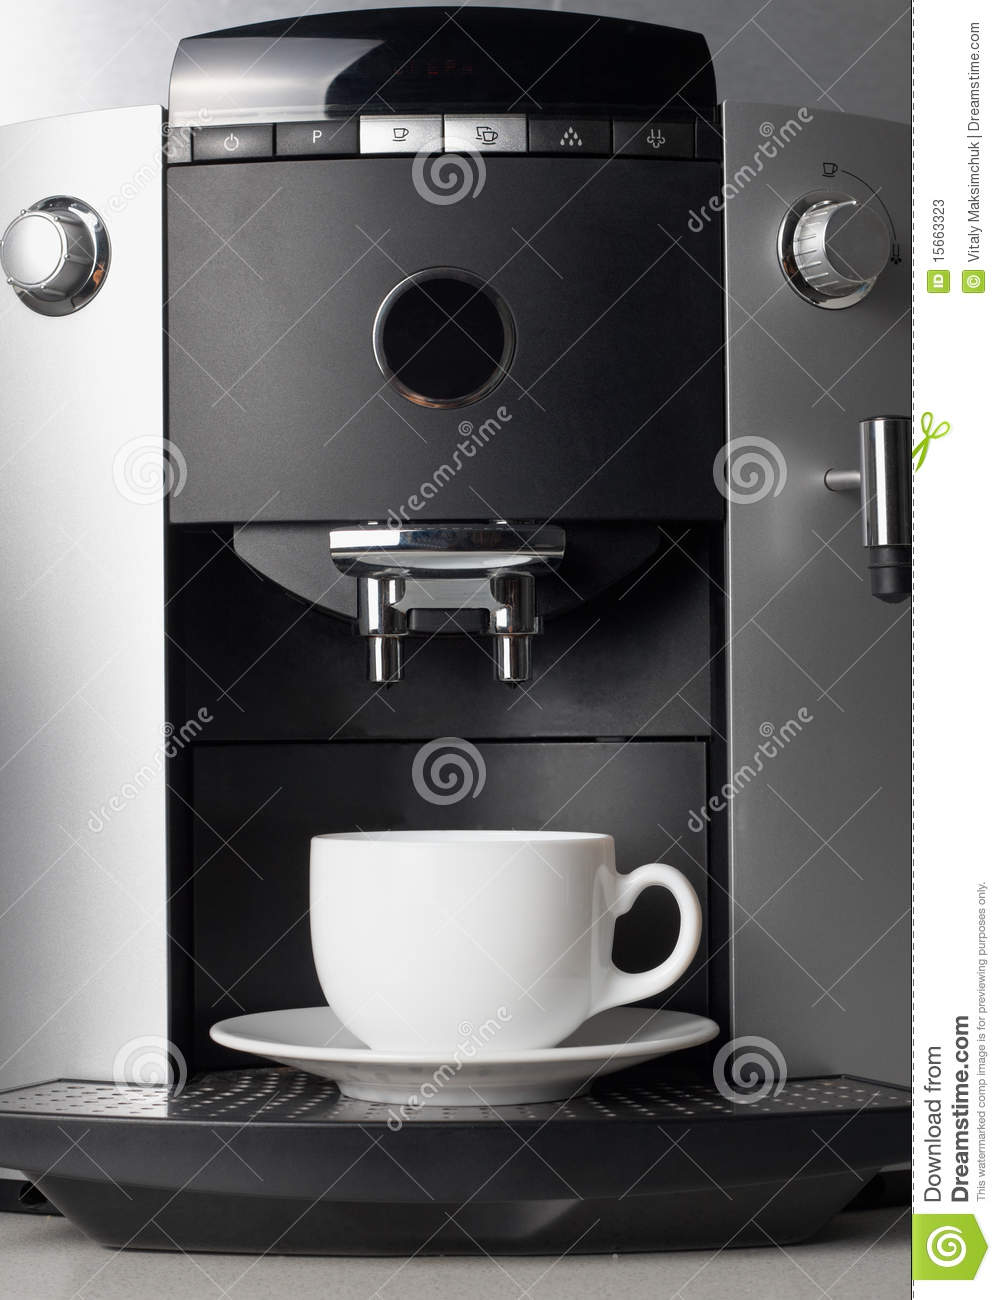 Vector Portable Coffee Maker : Coffee Maker Machine Stock Photos - Image: 15663323